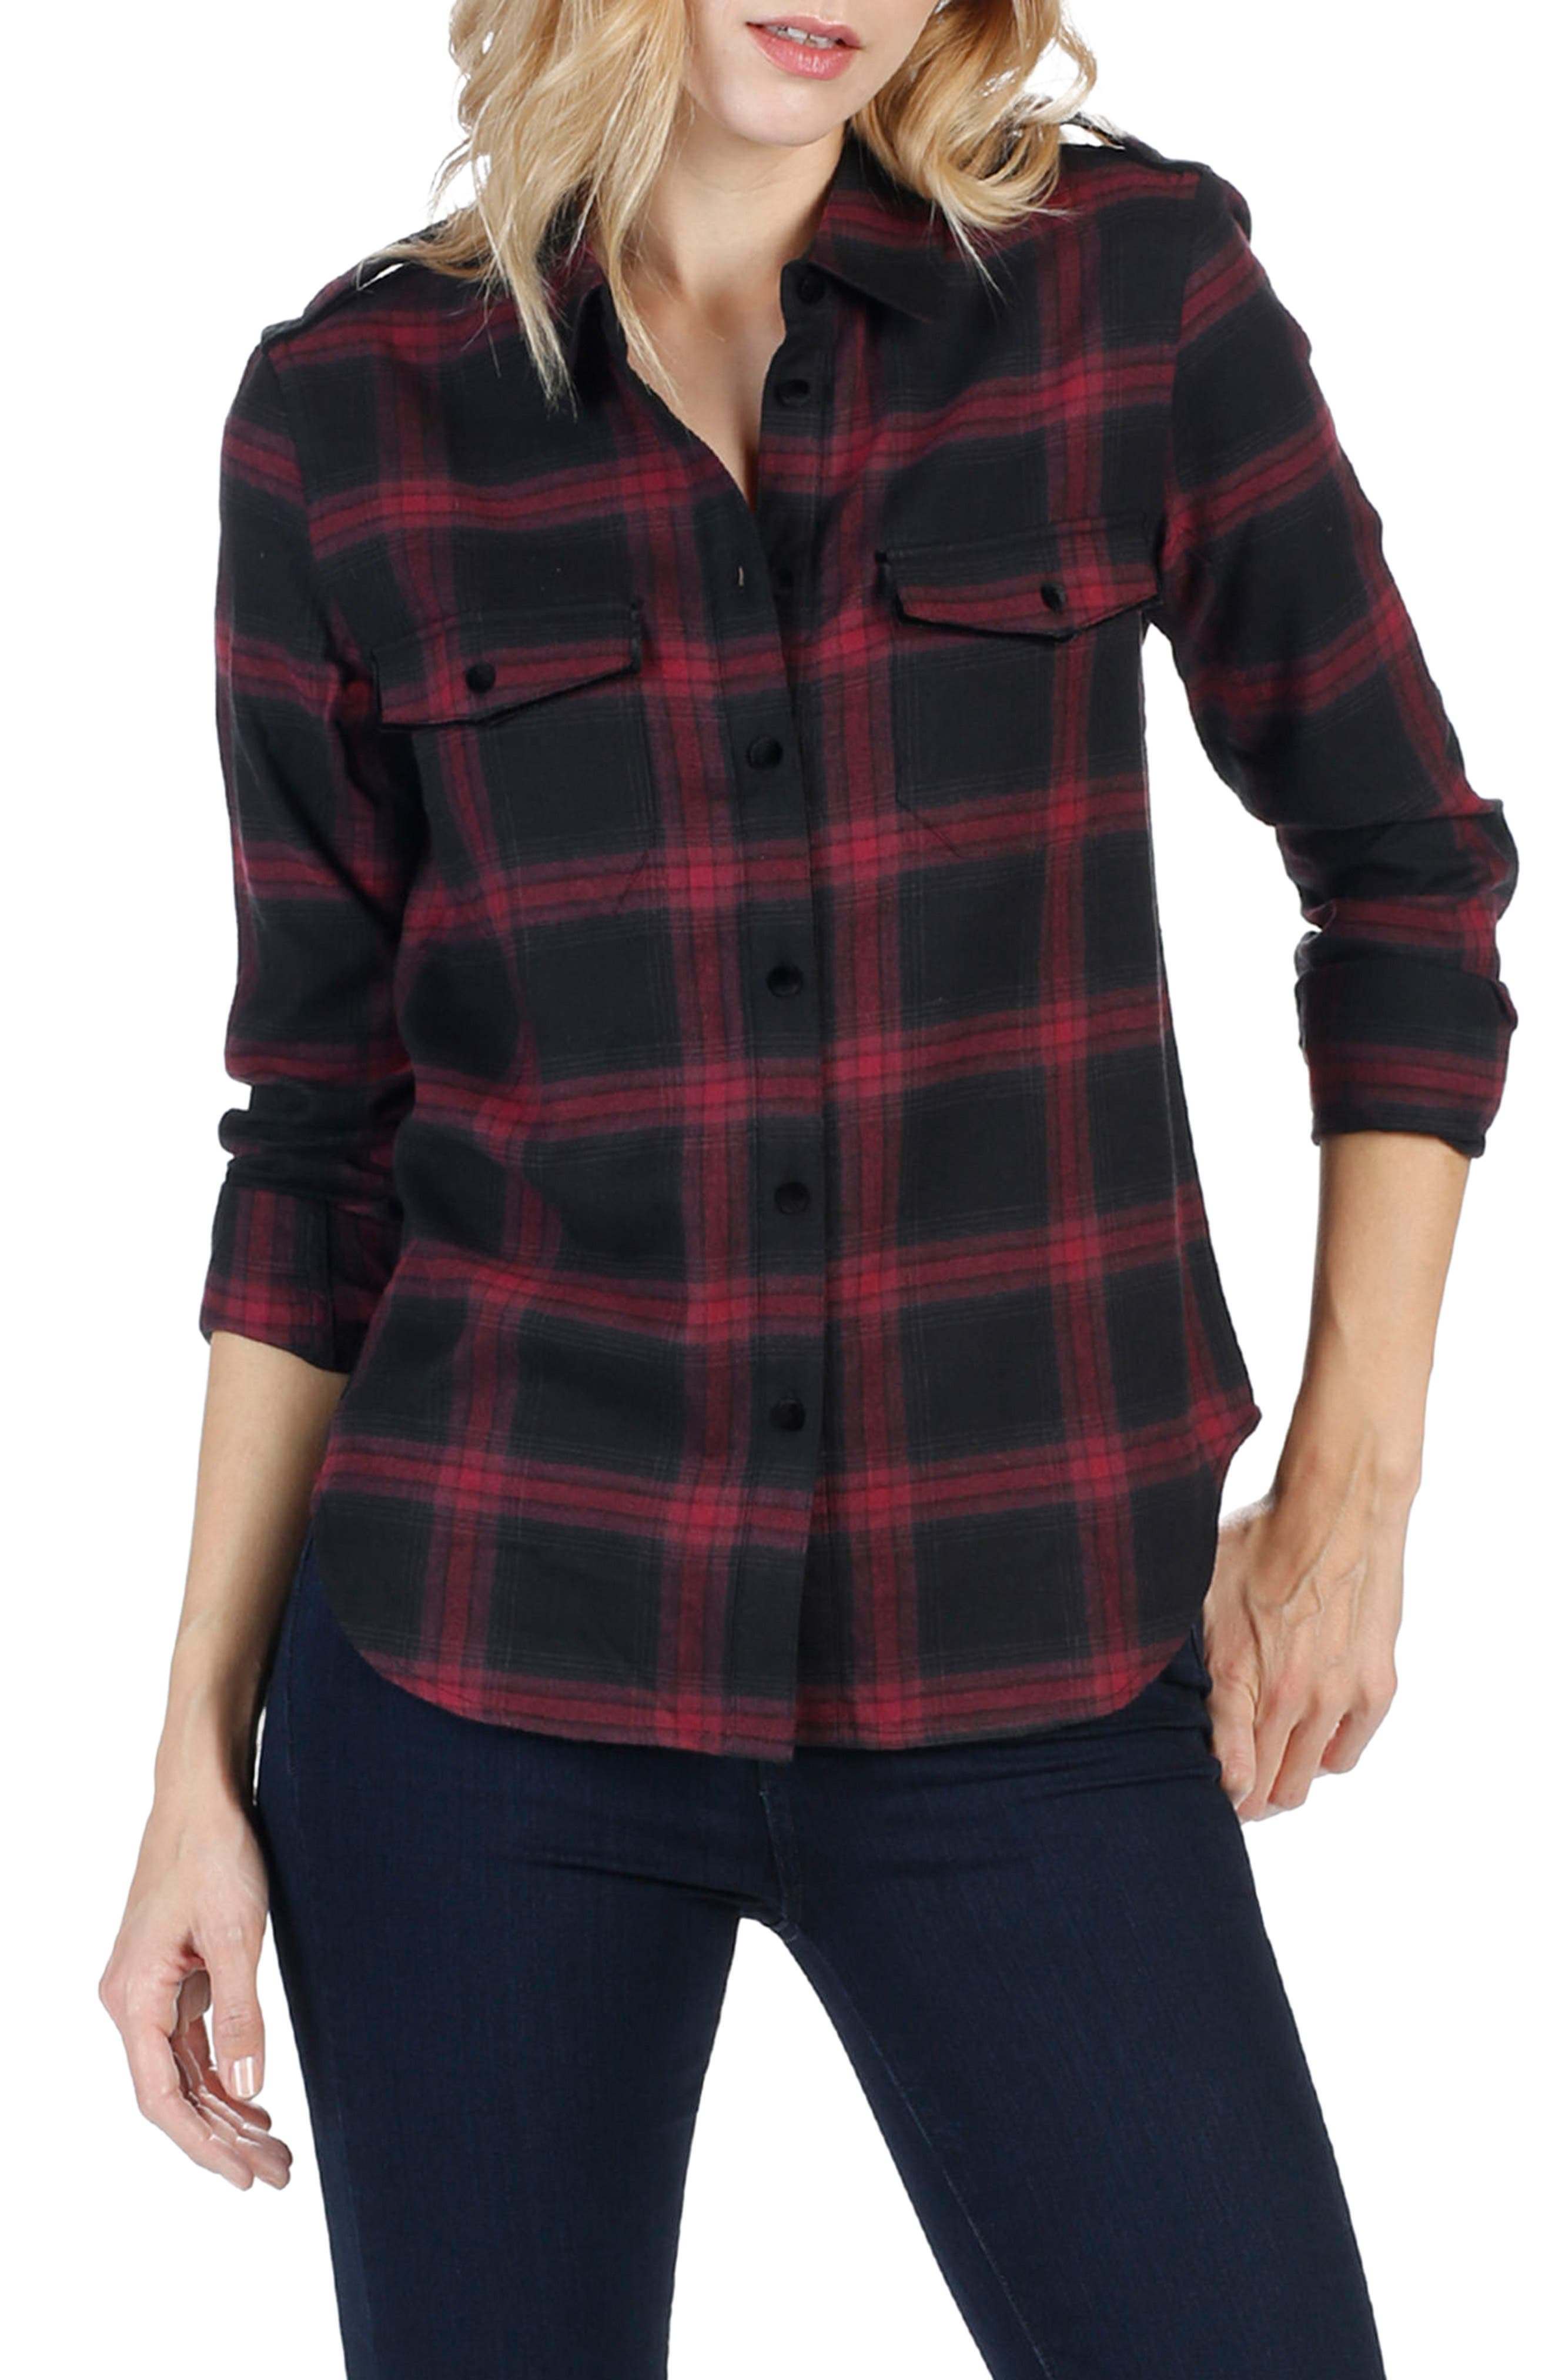 Adilene Plaid Shirt,                             Main thumbnail 1, color,                             True Black/ Dark Magenta